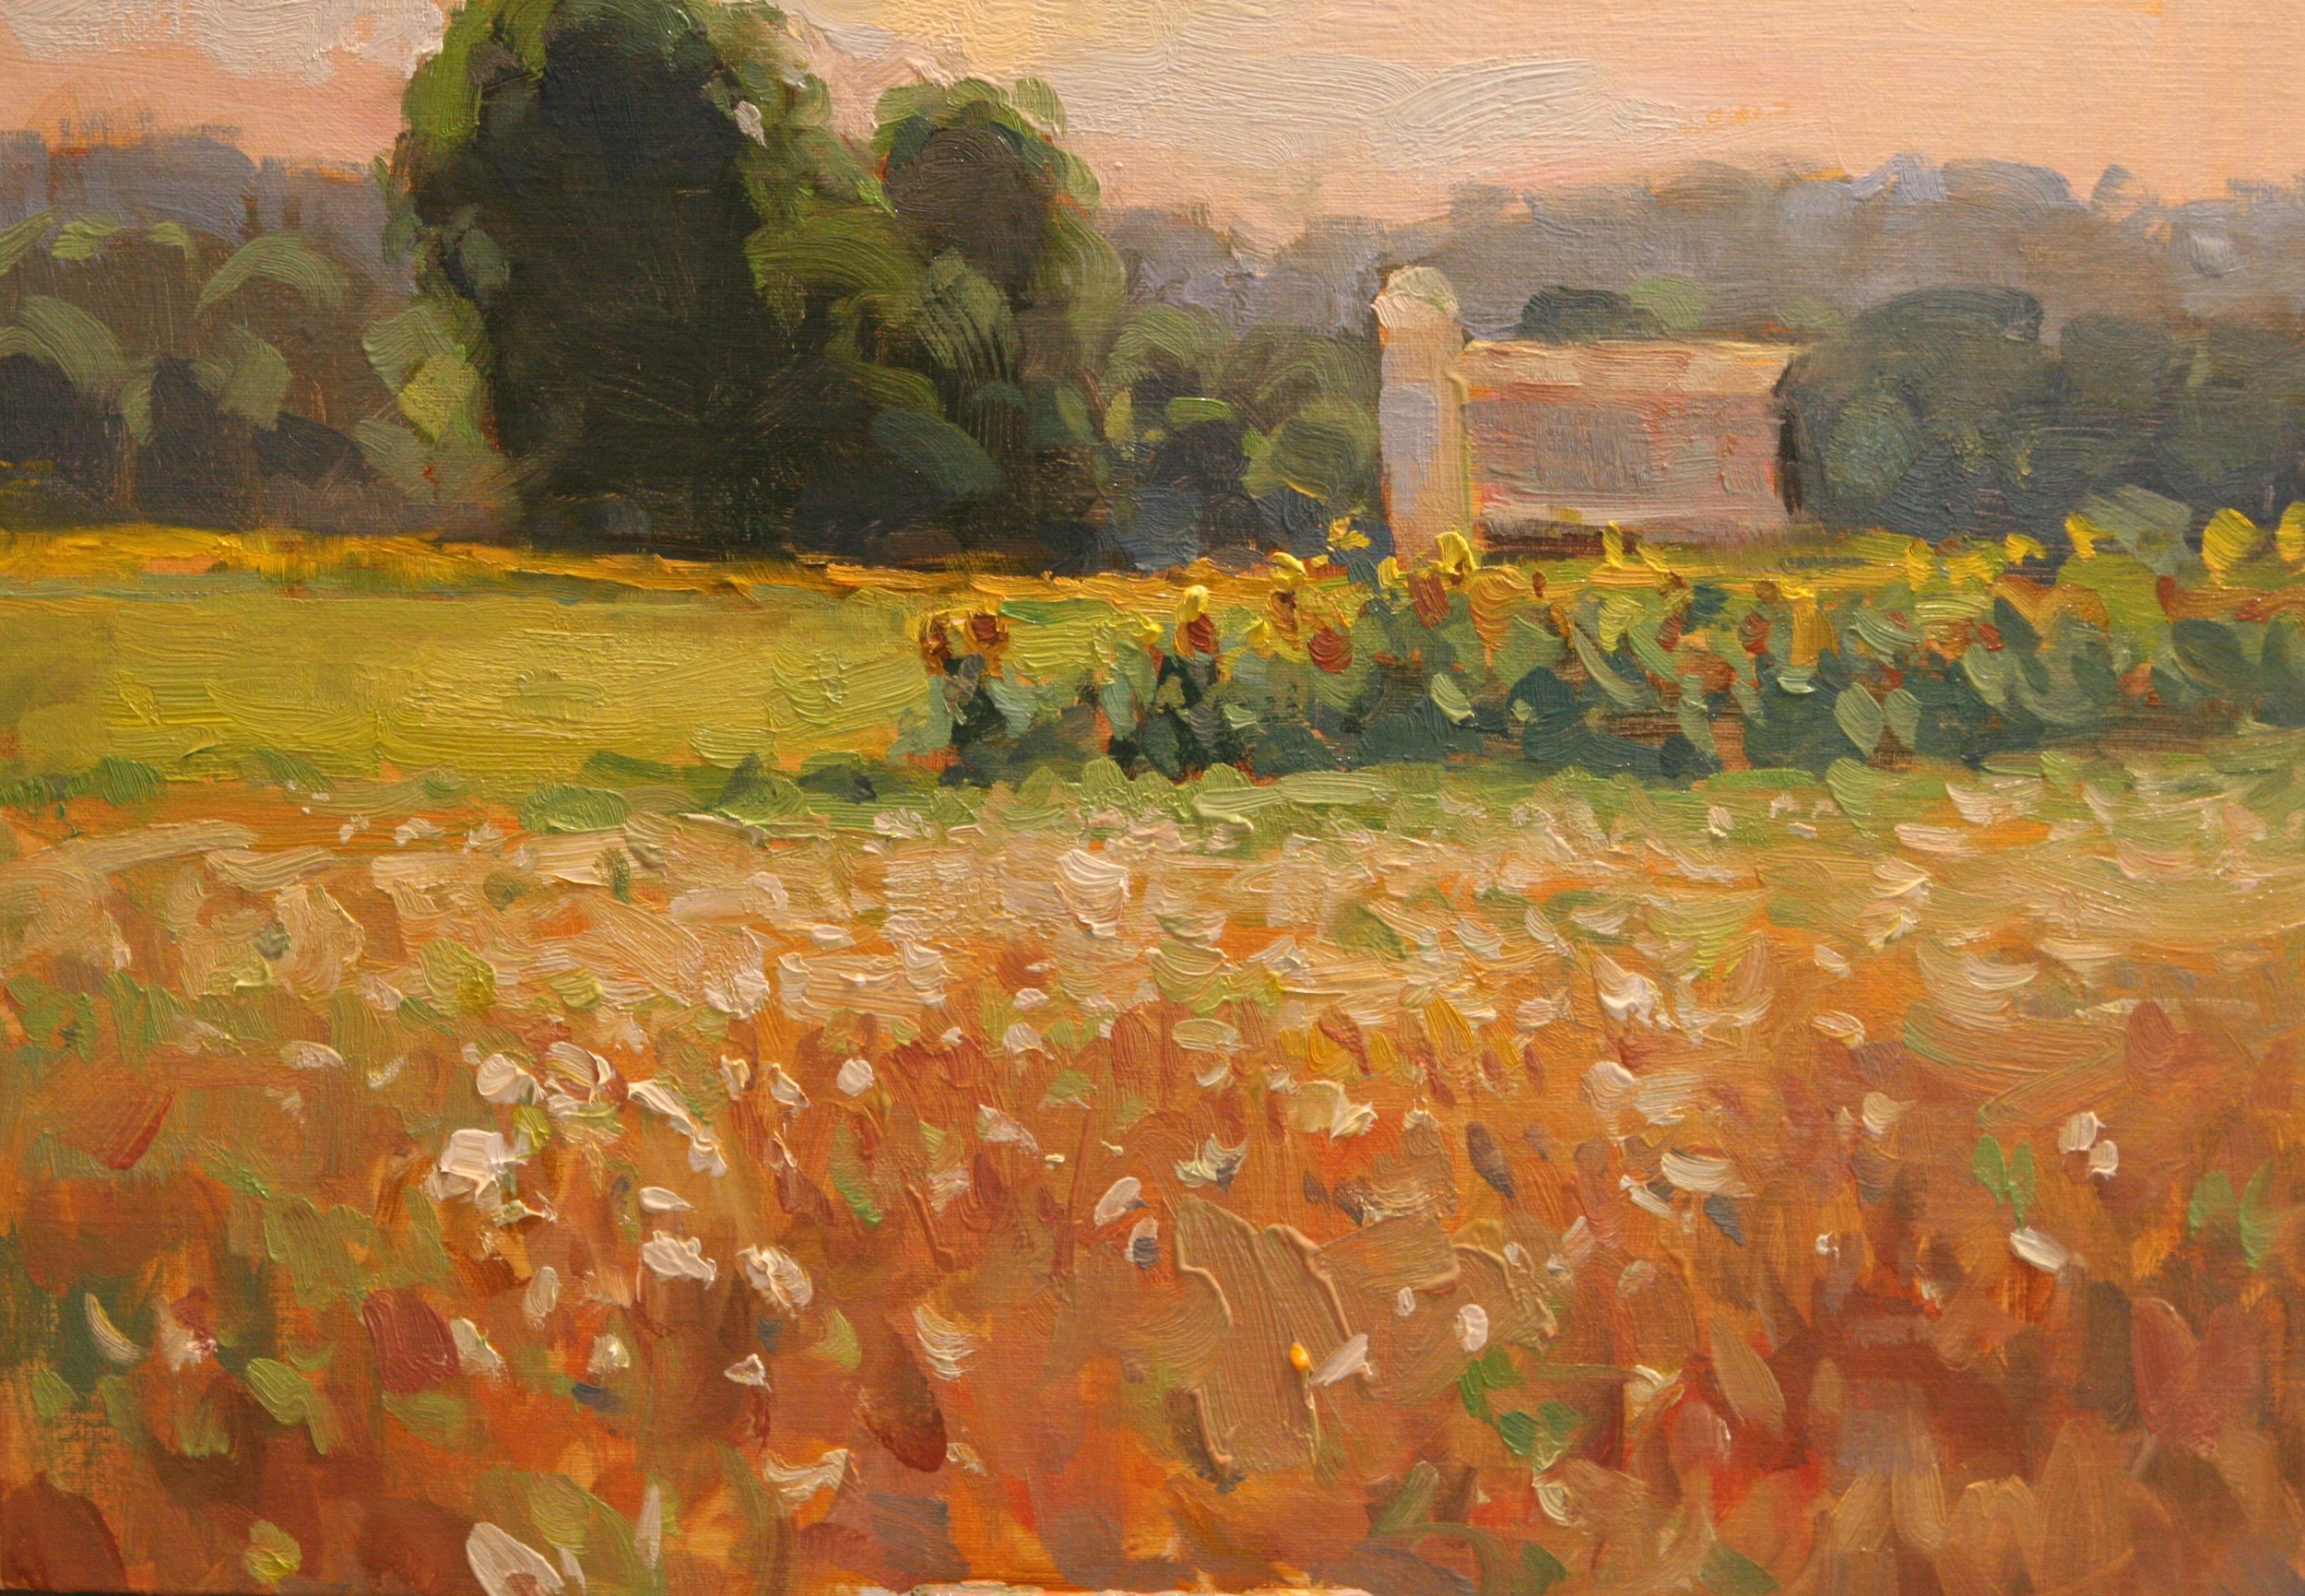 Queen Anne's Lace & Sunflowers, Richard Oversmith